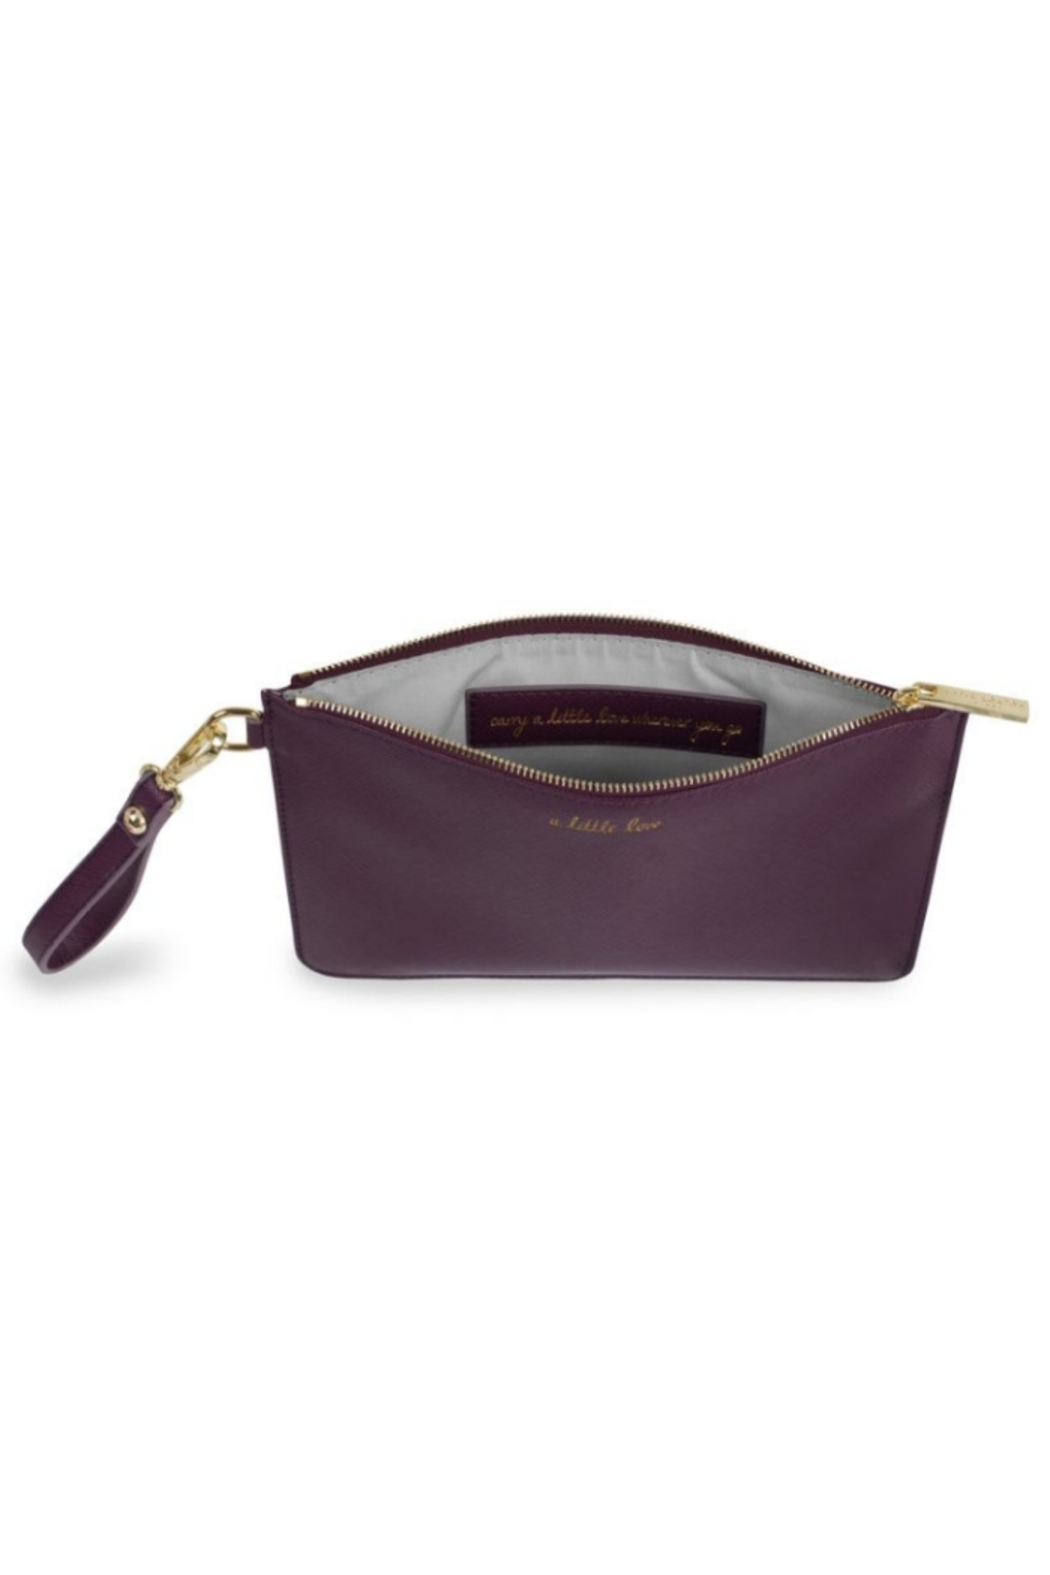 Katie Loxton SECRET MESSAGE POUCH | A LITTLE LOVE, CARRY A LITTLE LOVE WITH YOU WHEREVER YOU - Front Full Image